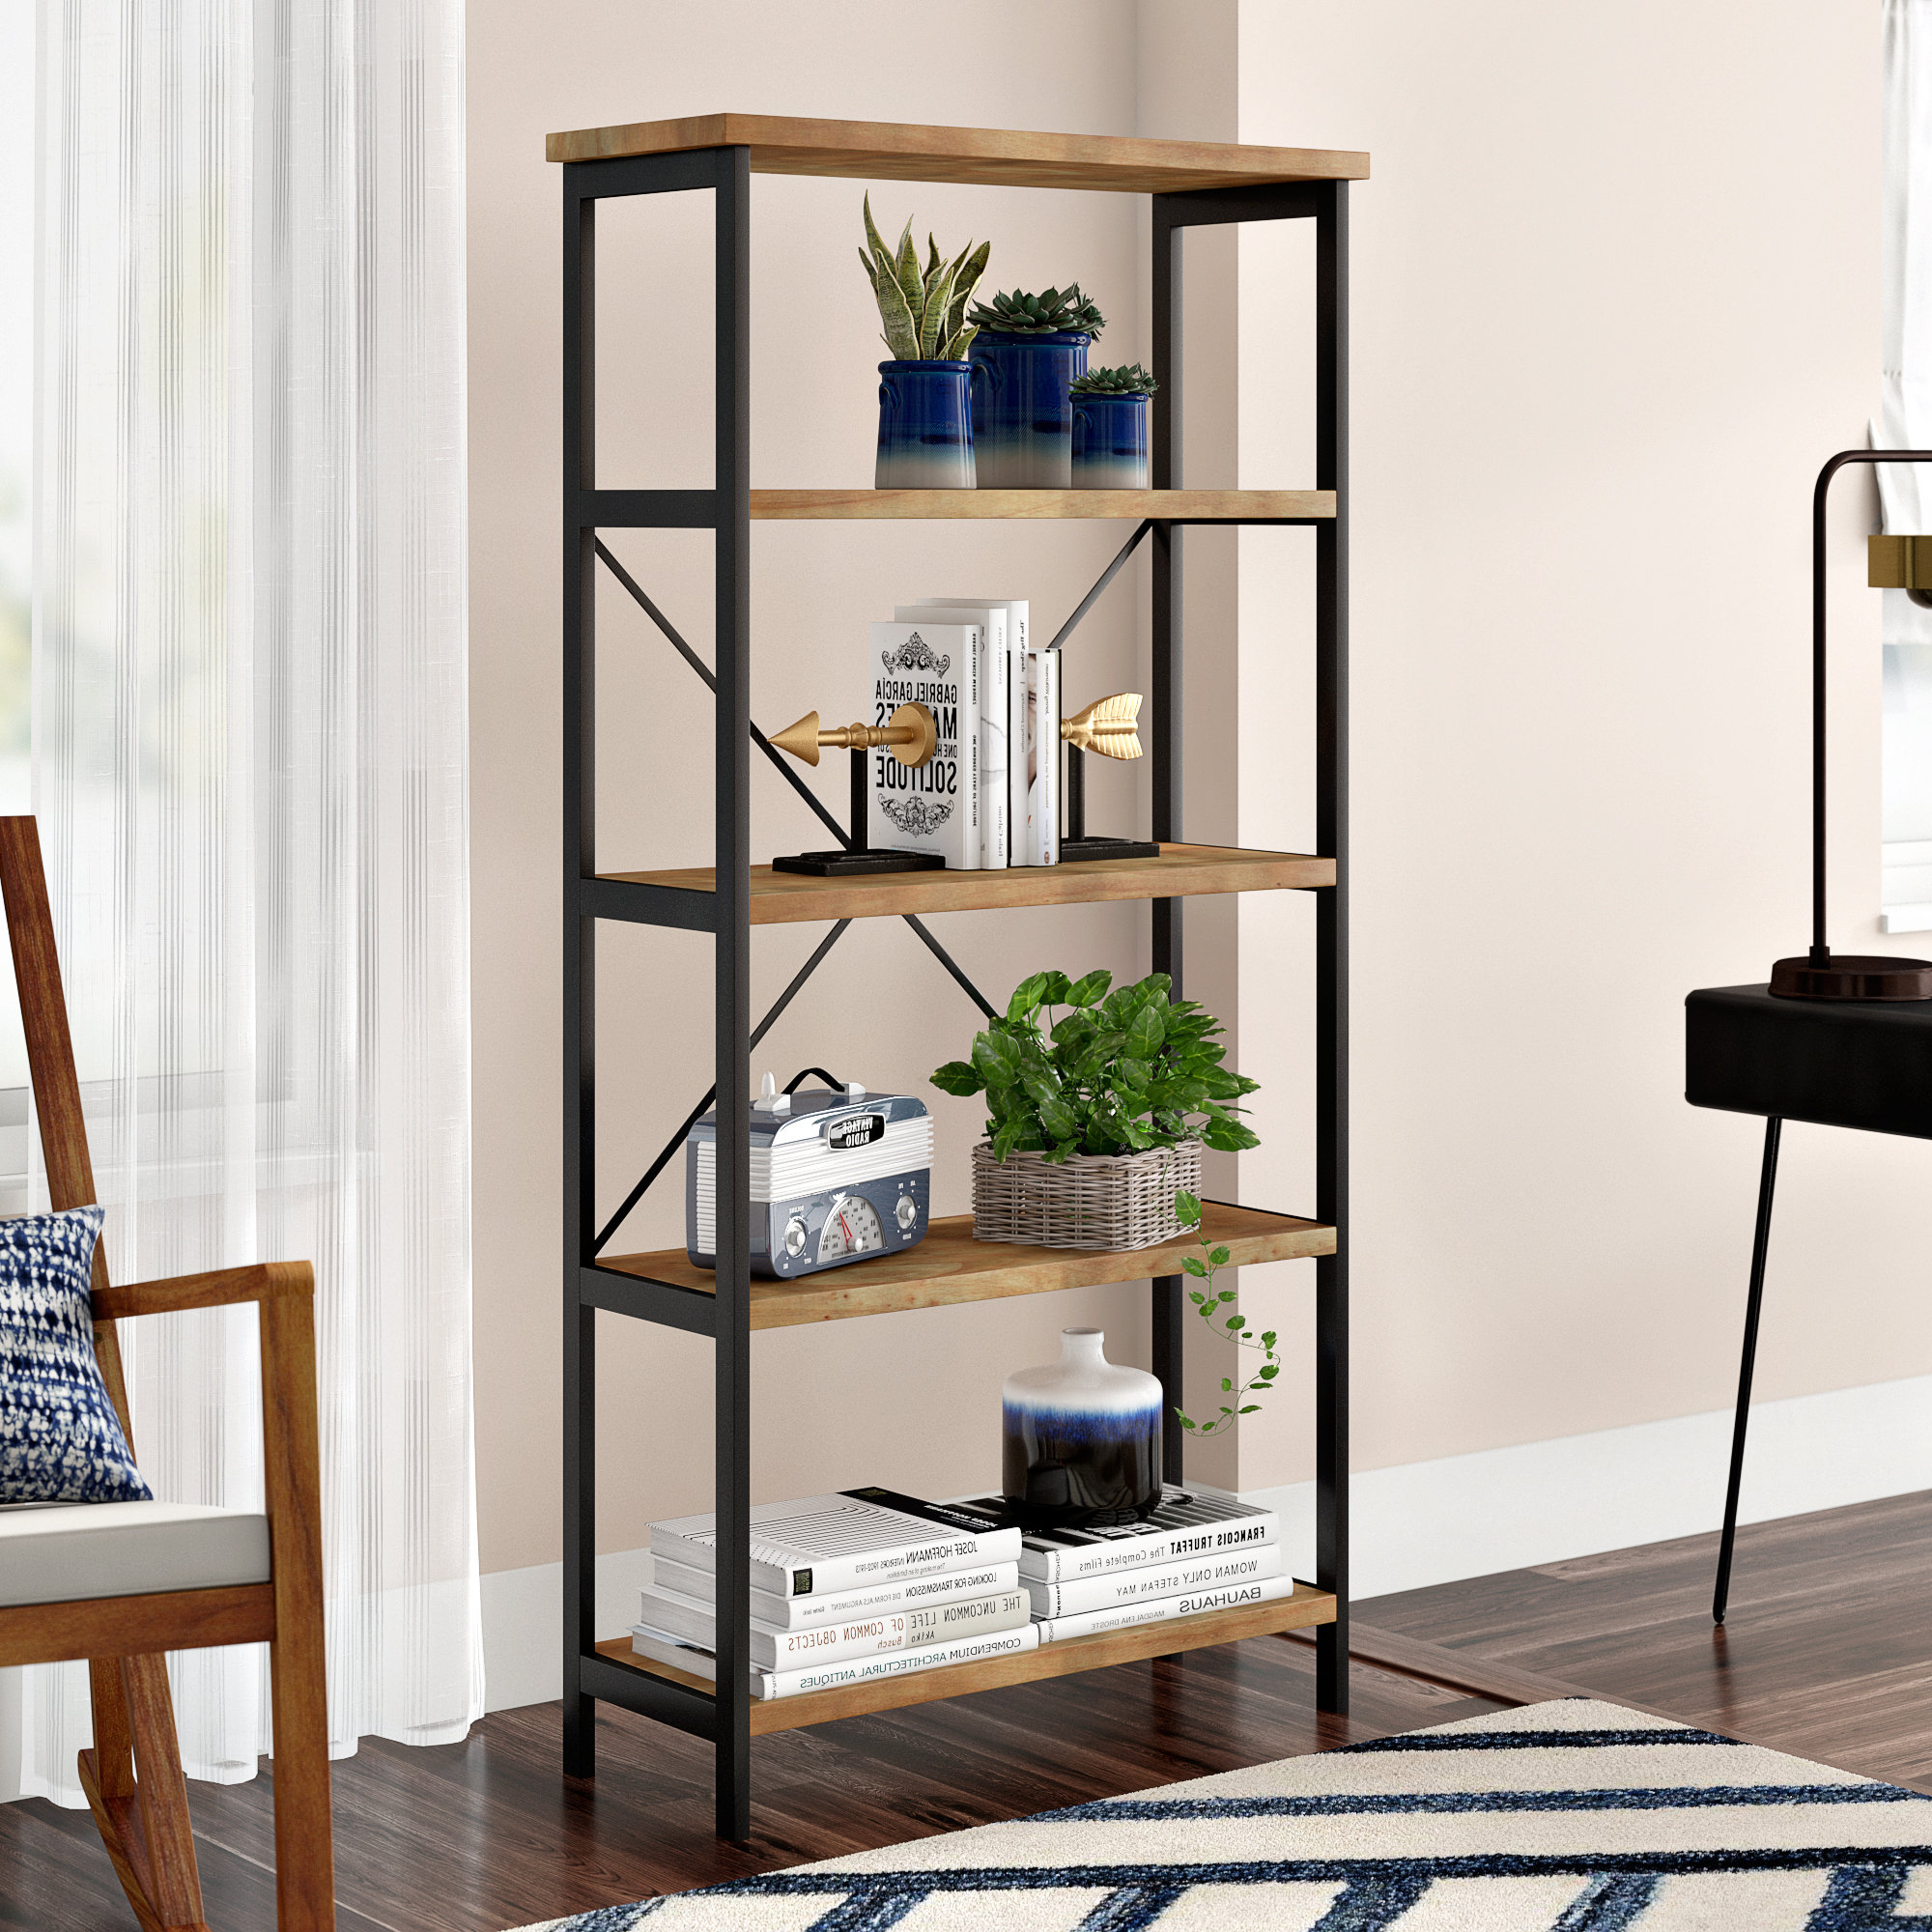 Well Liked Parthenia Etagere Bookcase Pertaining To Ermont Etagere Bookcases (View 13 of 20)